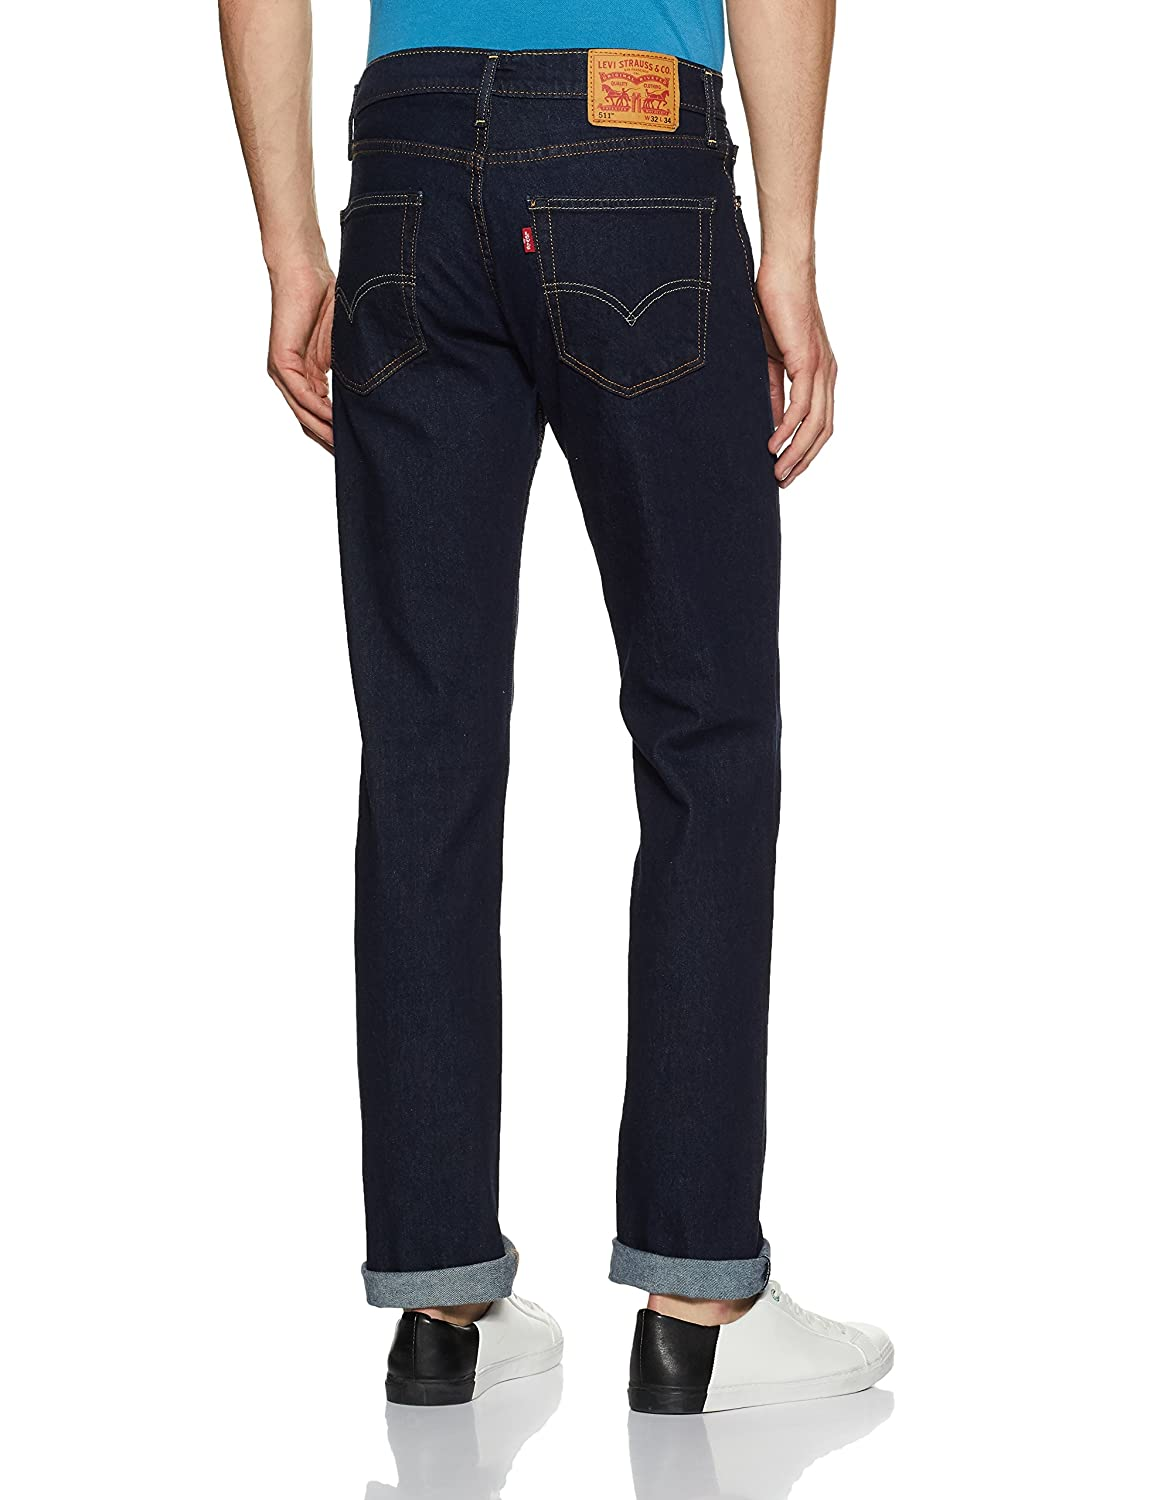 00aabaefbc3 Levi's Men's (511) Slim Fit Jeans: Amazon.in: Clothing & Accessories